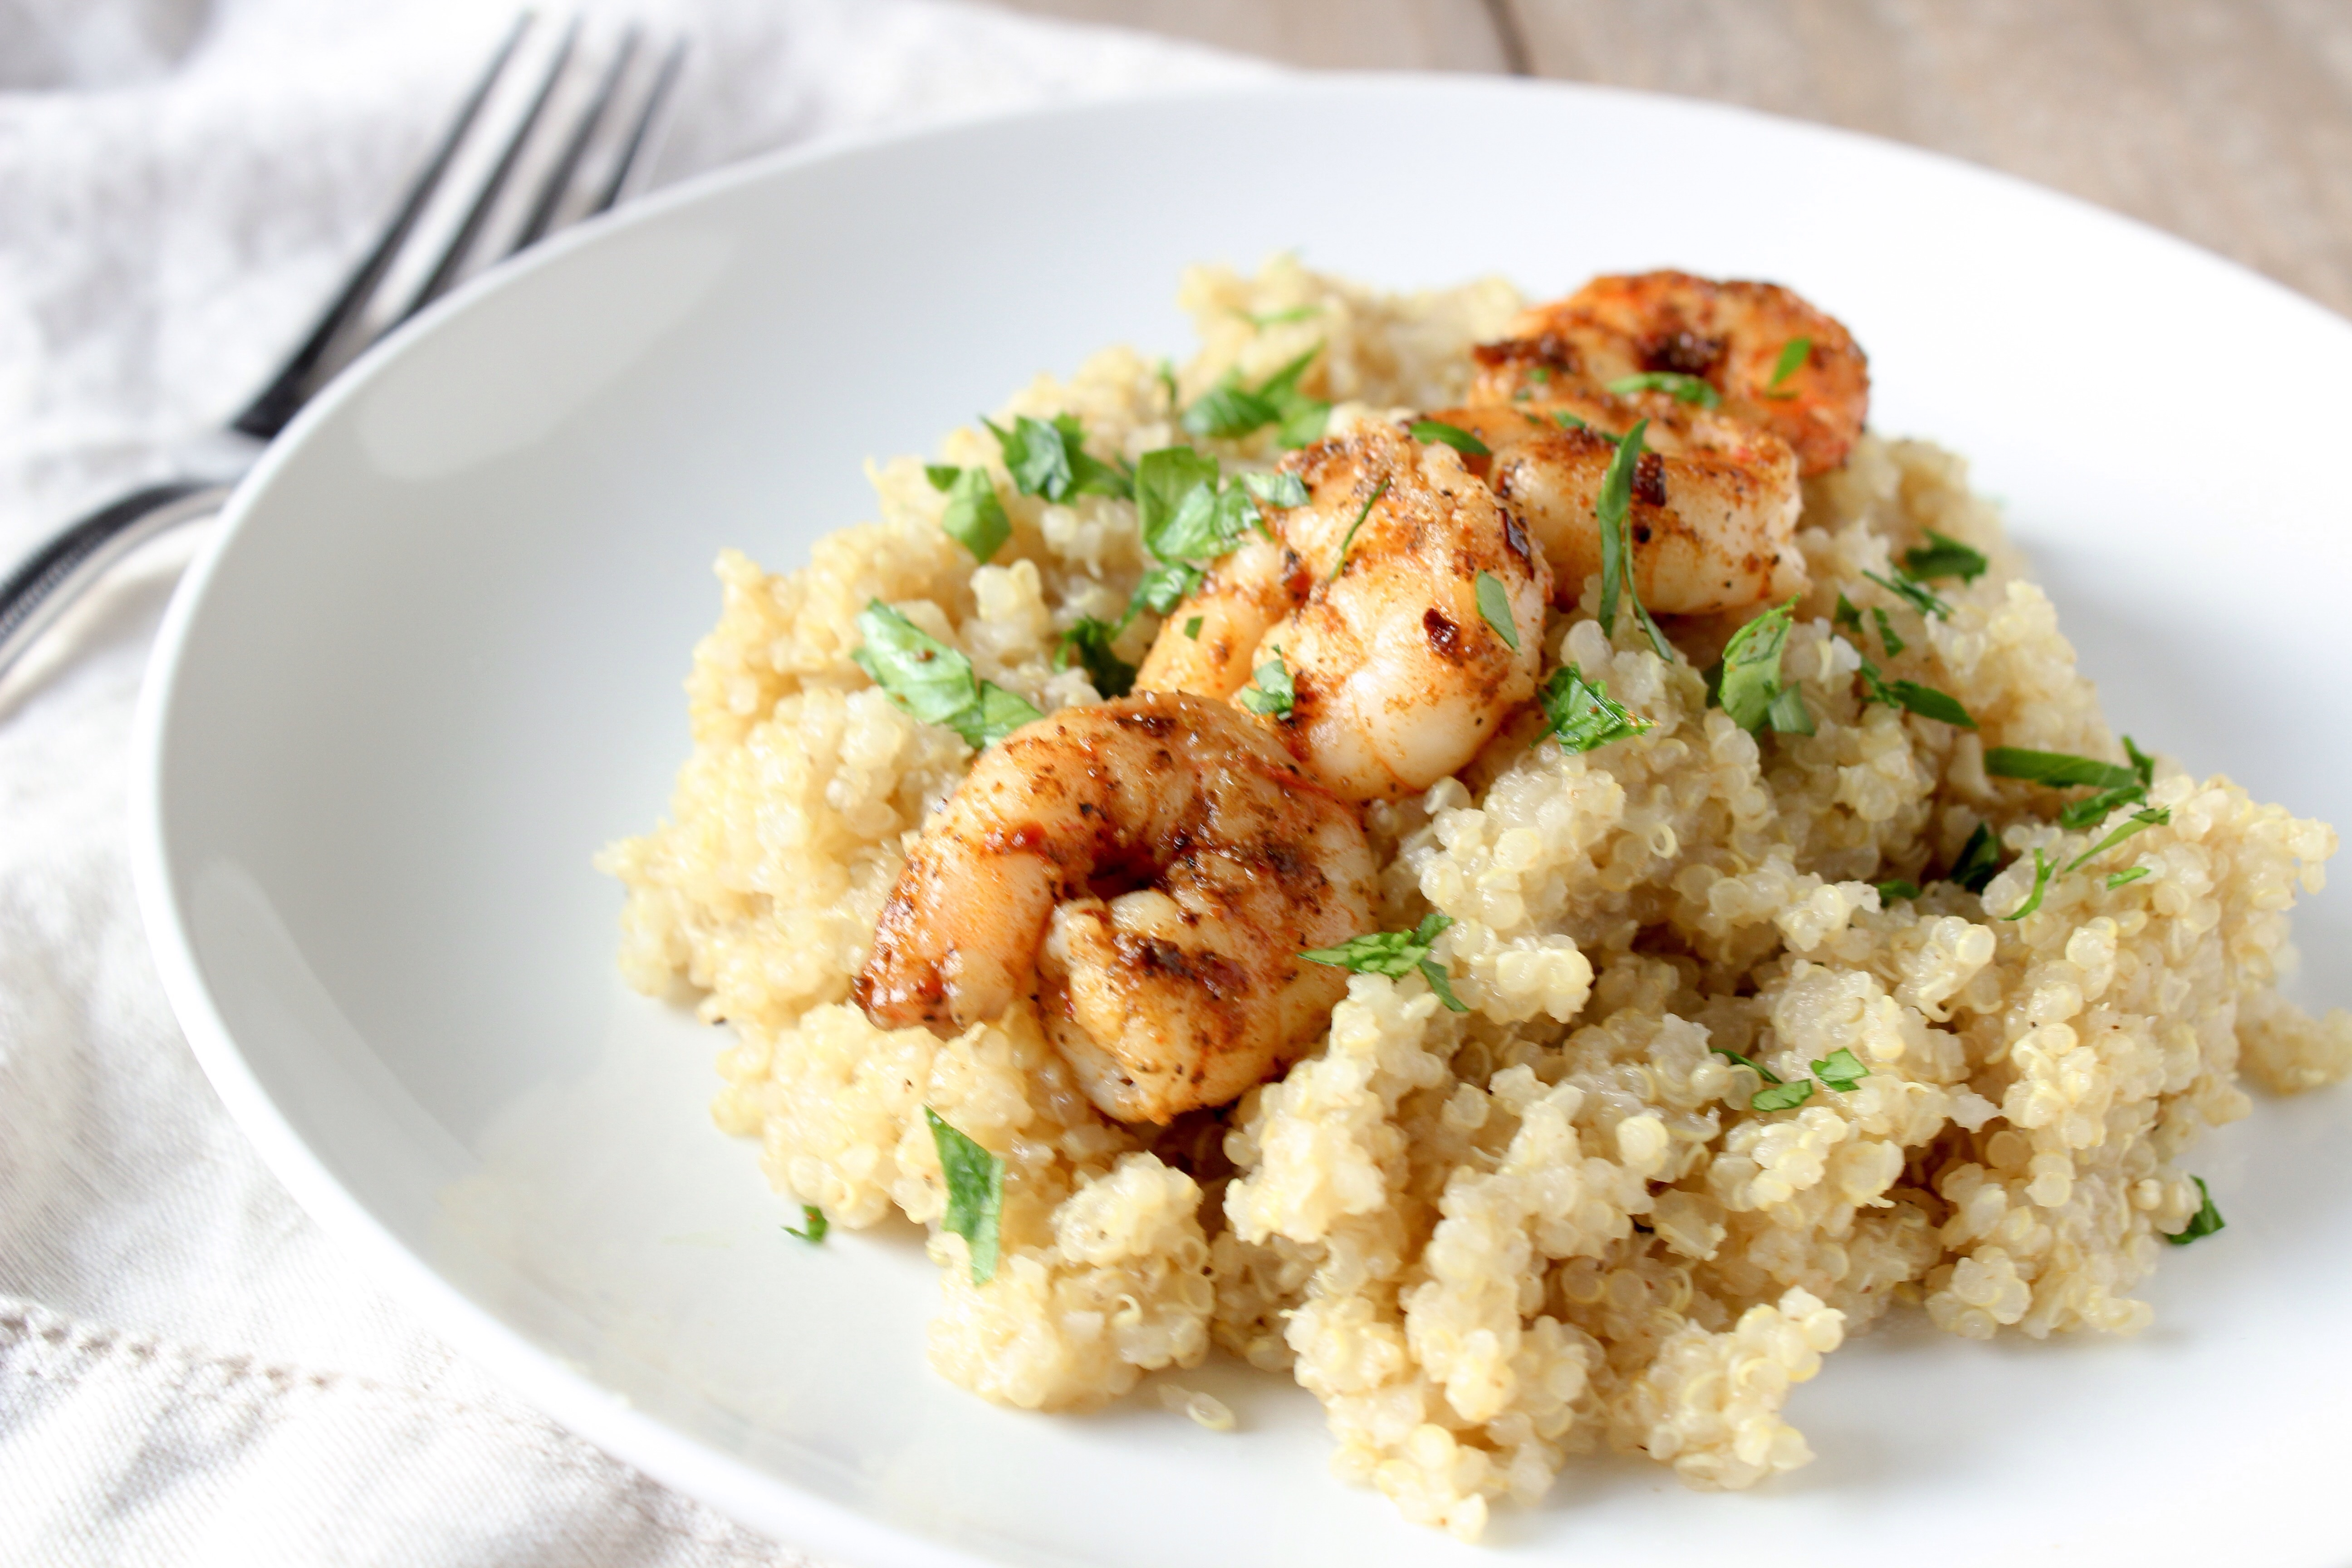 Spicy shrimp with Garlicky Parmesan Quinoa - Meg's Meal ...